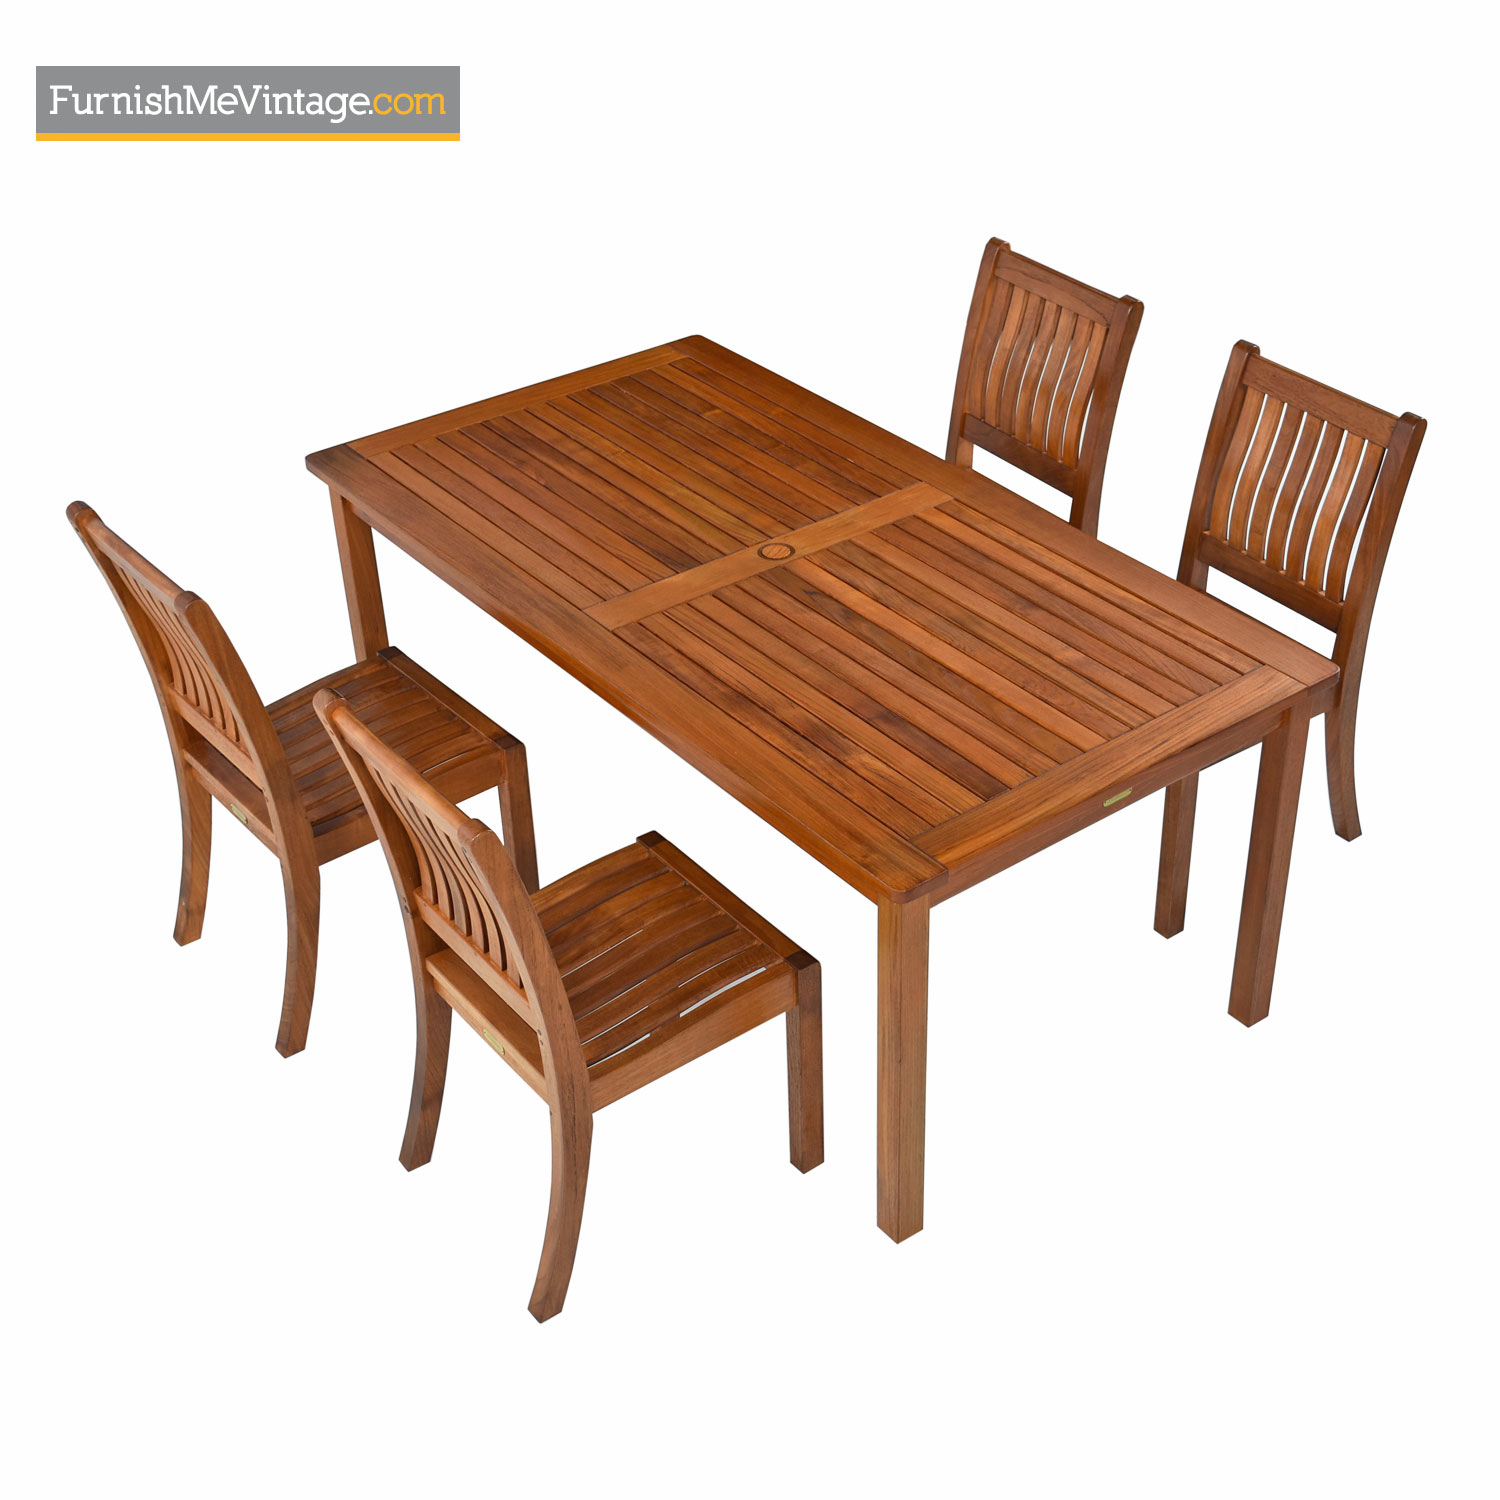 Restoration Hardware Solid Teak Outdoor Dining Table 4 Chair Set